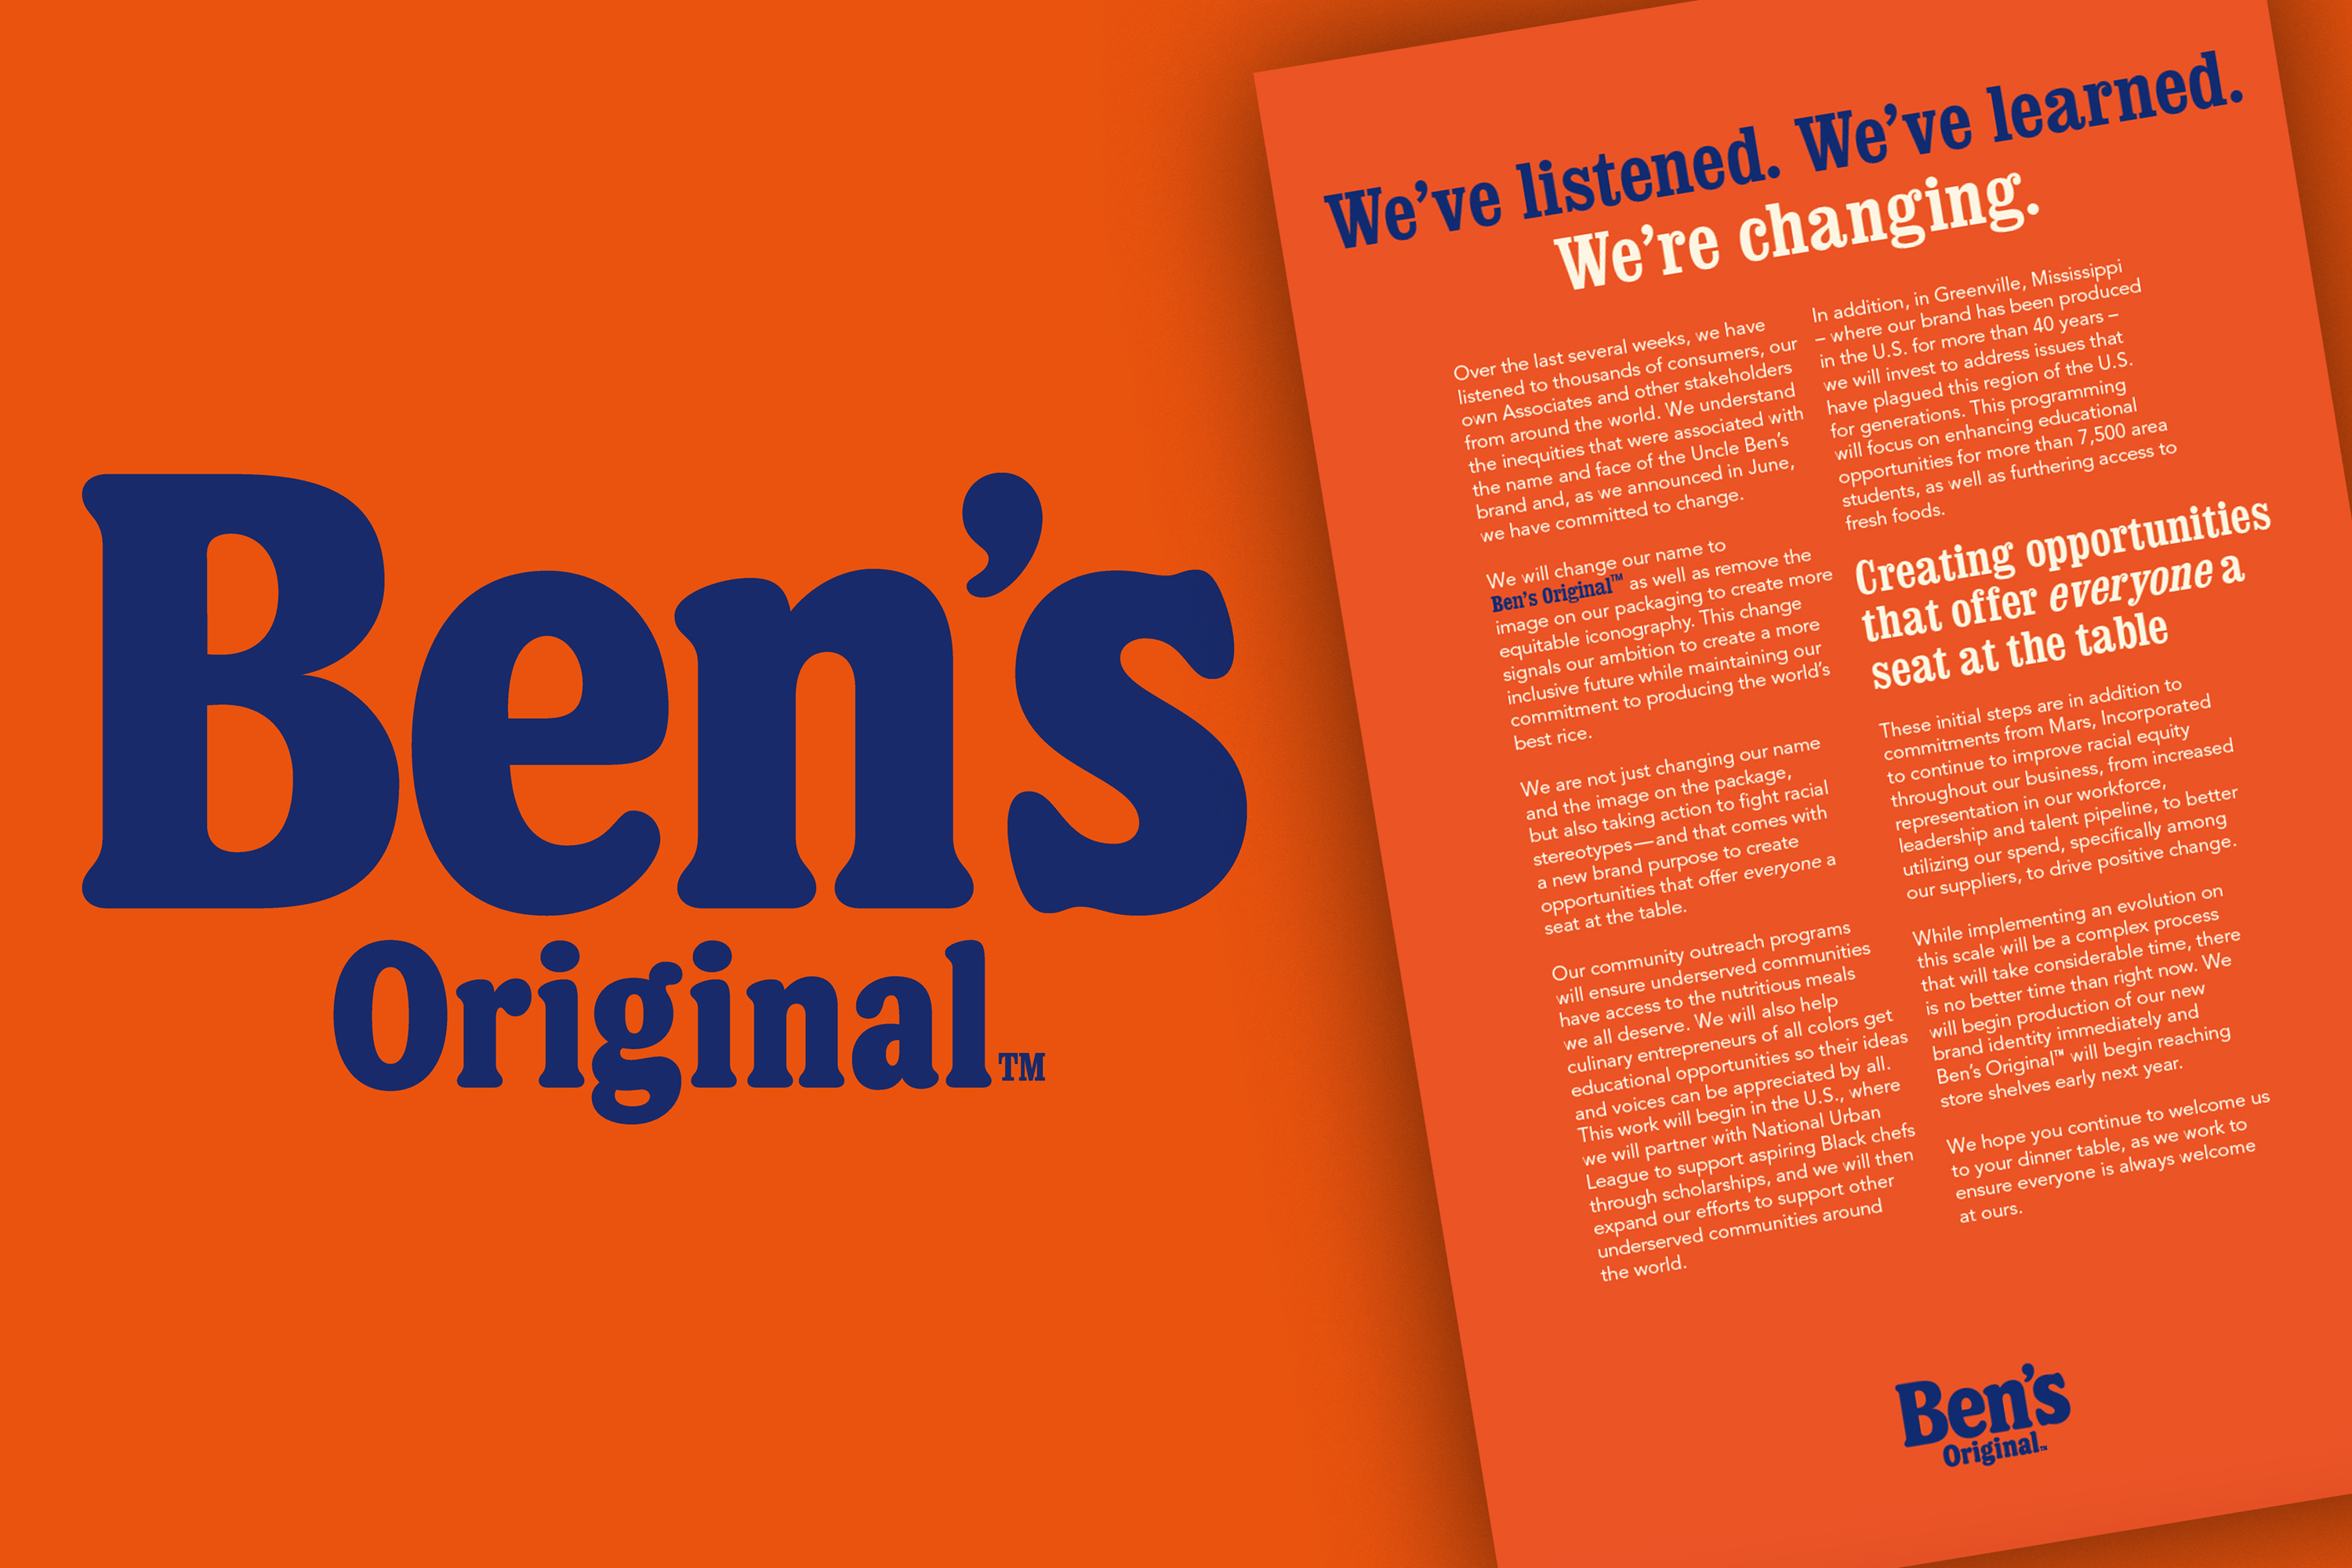 Uncle Ben's will become Ben's Original in a major rebranding effort